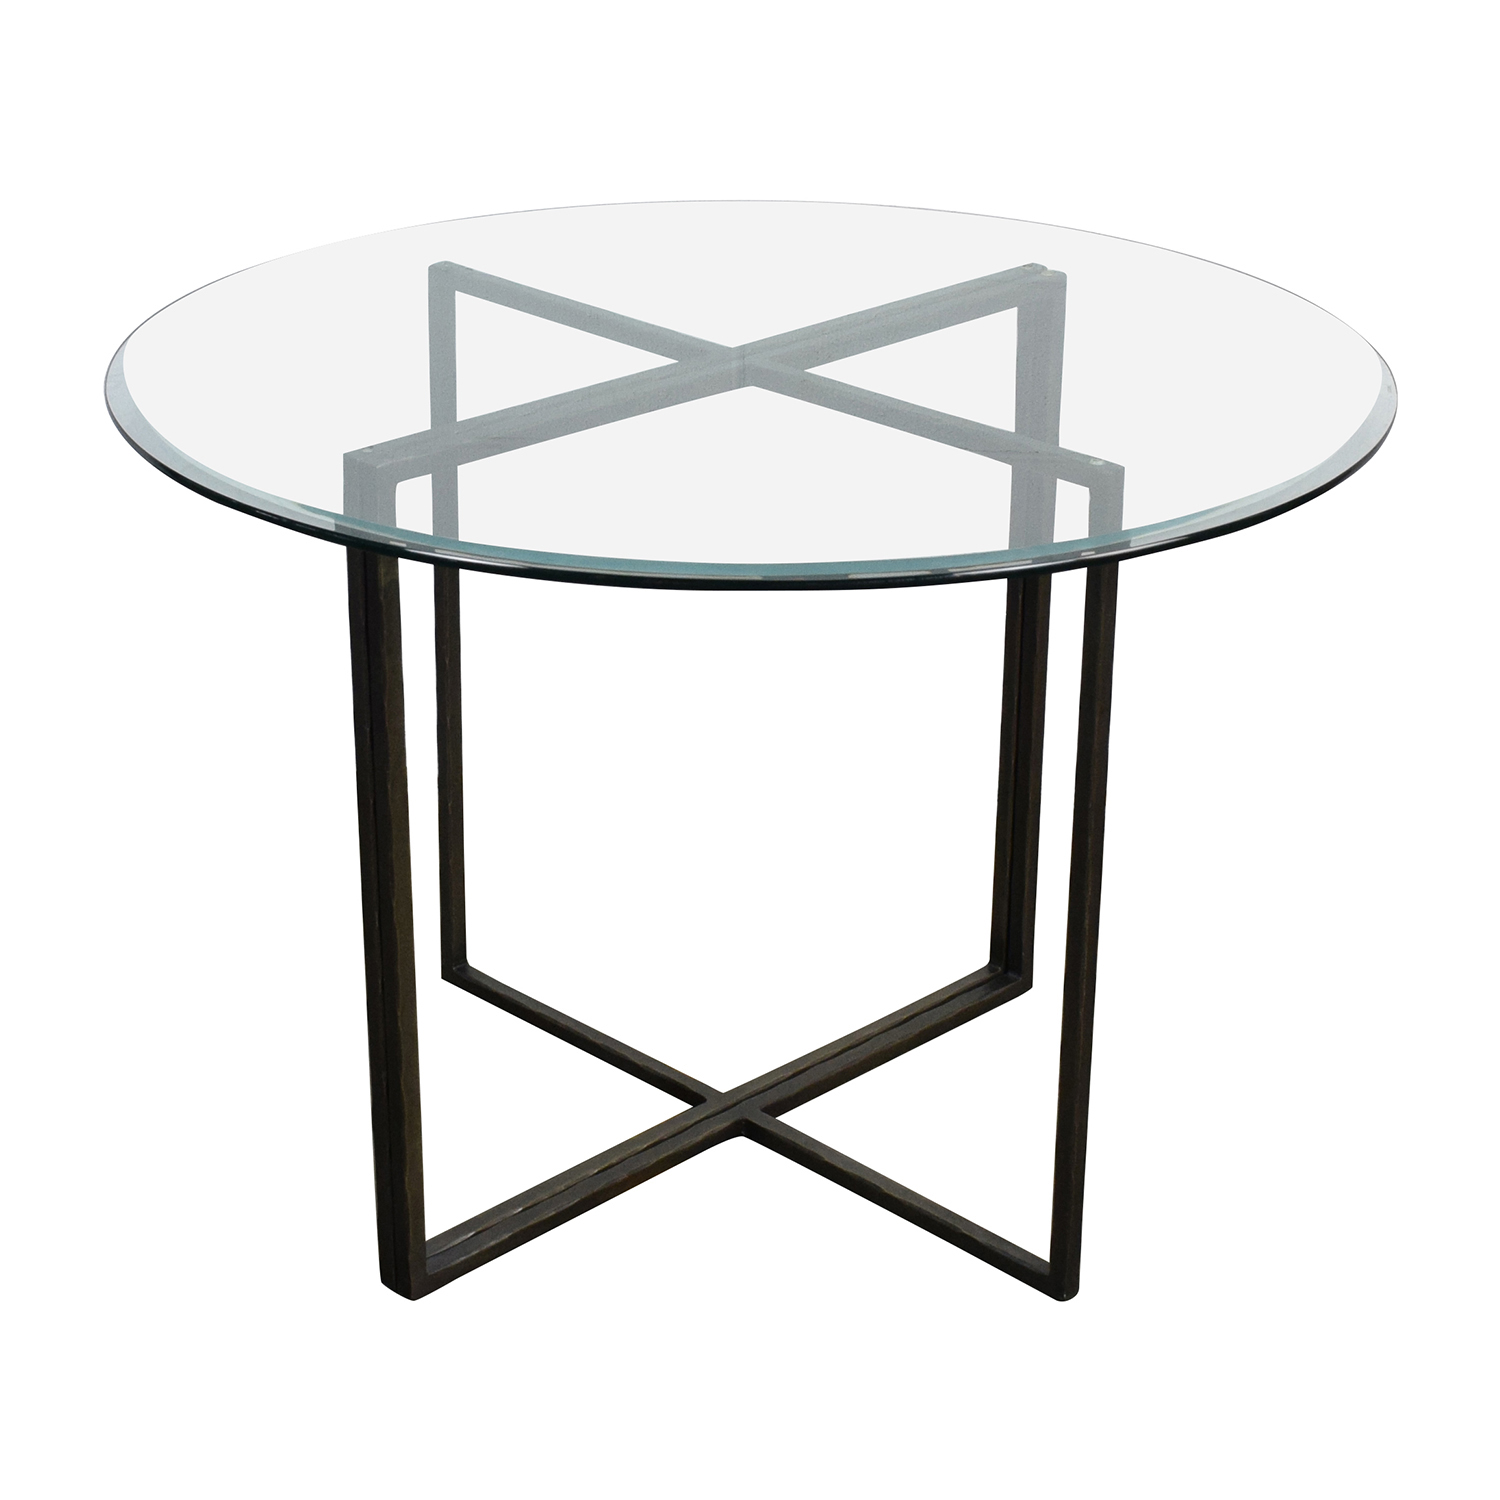 Crate and Barrel Crate & Barrel Everitt Glass Top Dining Table on sale